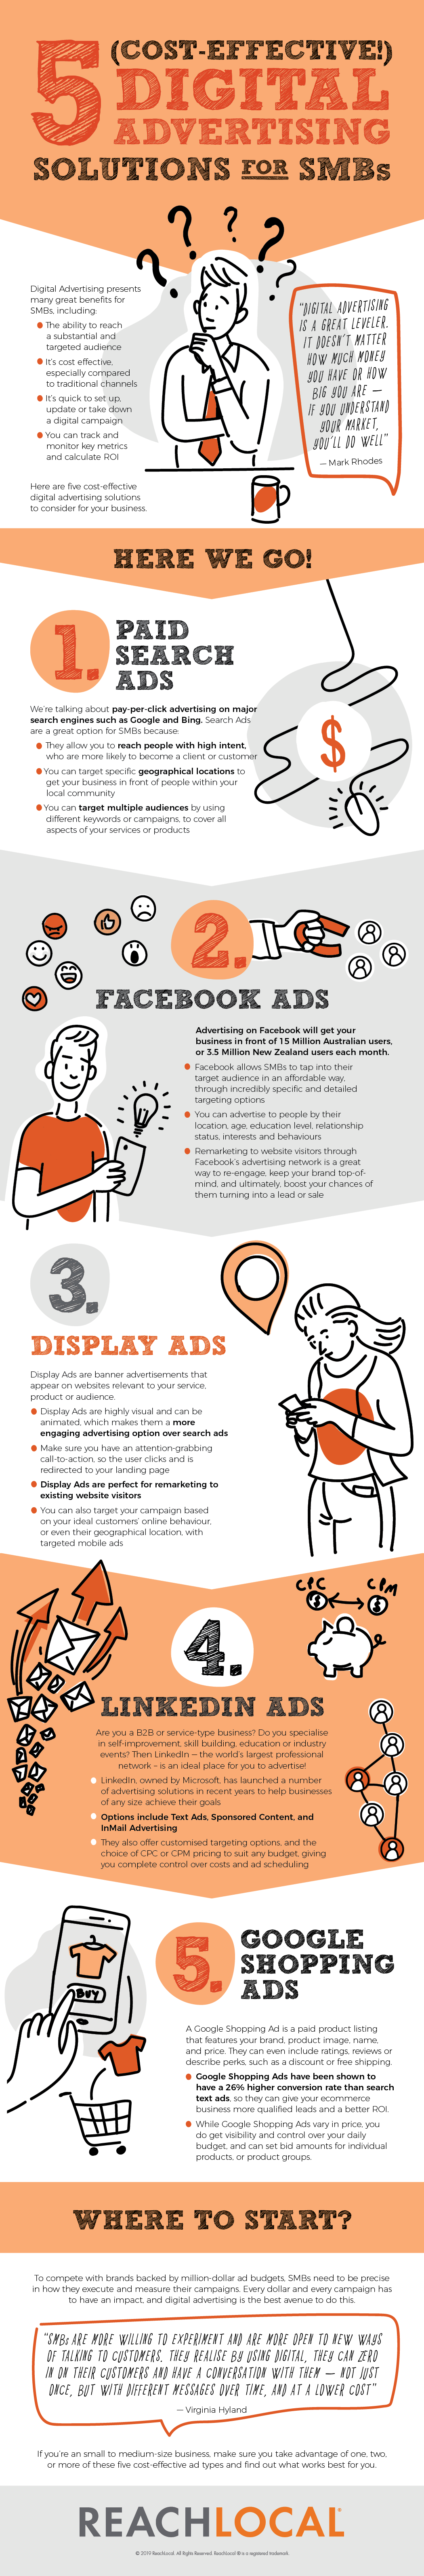 ReachLocal Infographic: 5 Cost-Effective Digital Advertising Solutions for SMBs